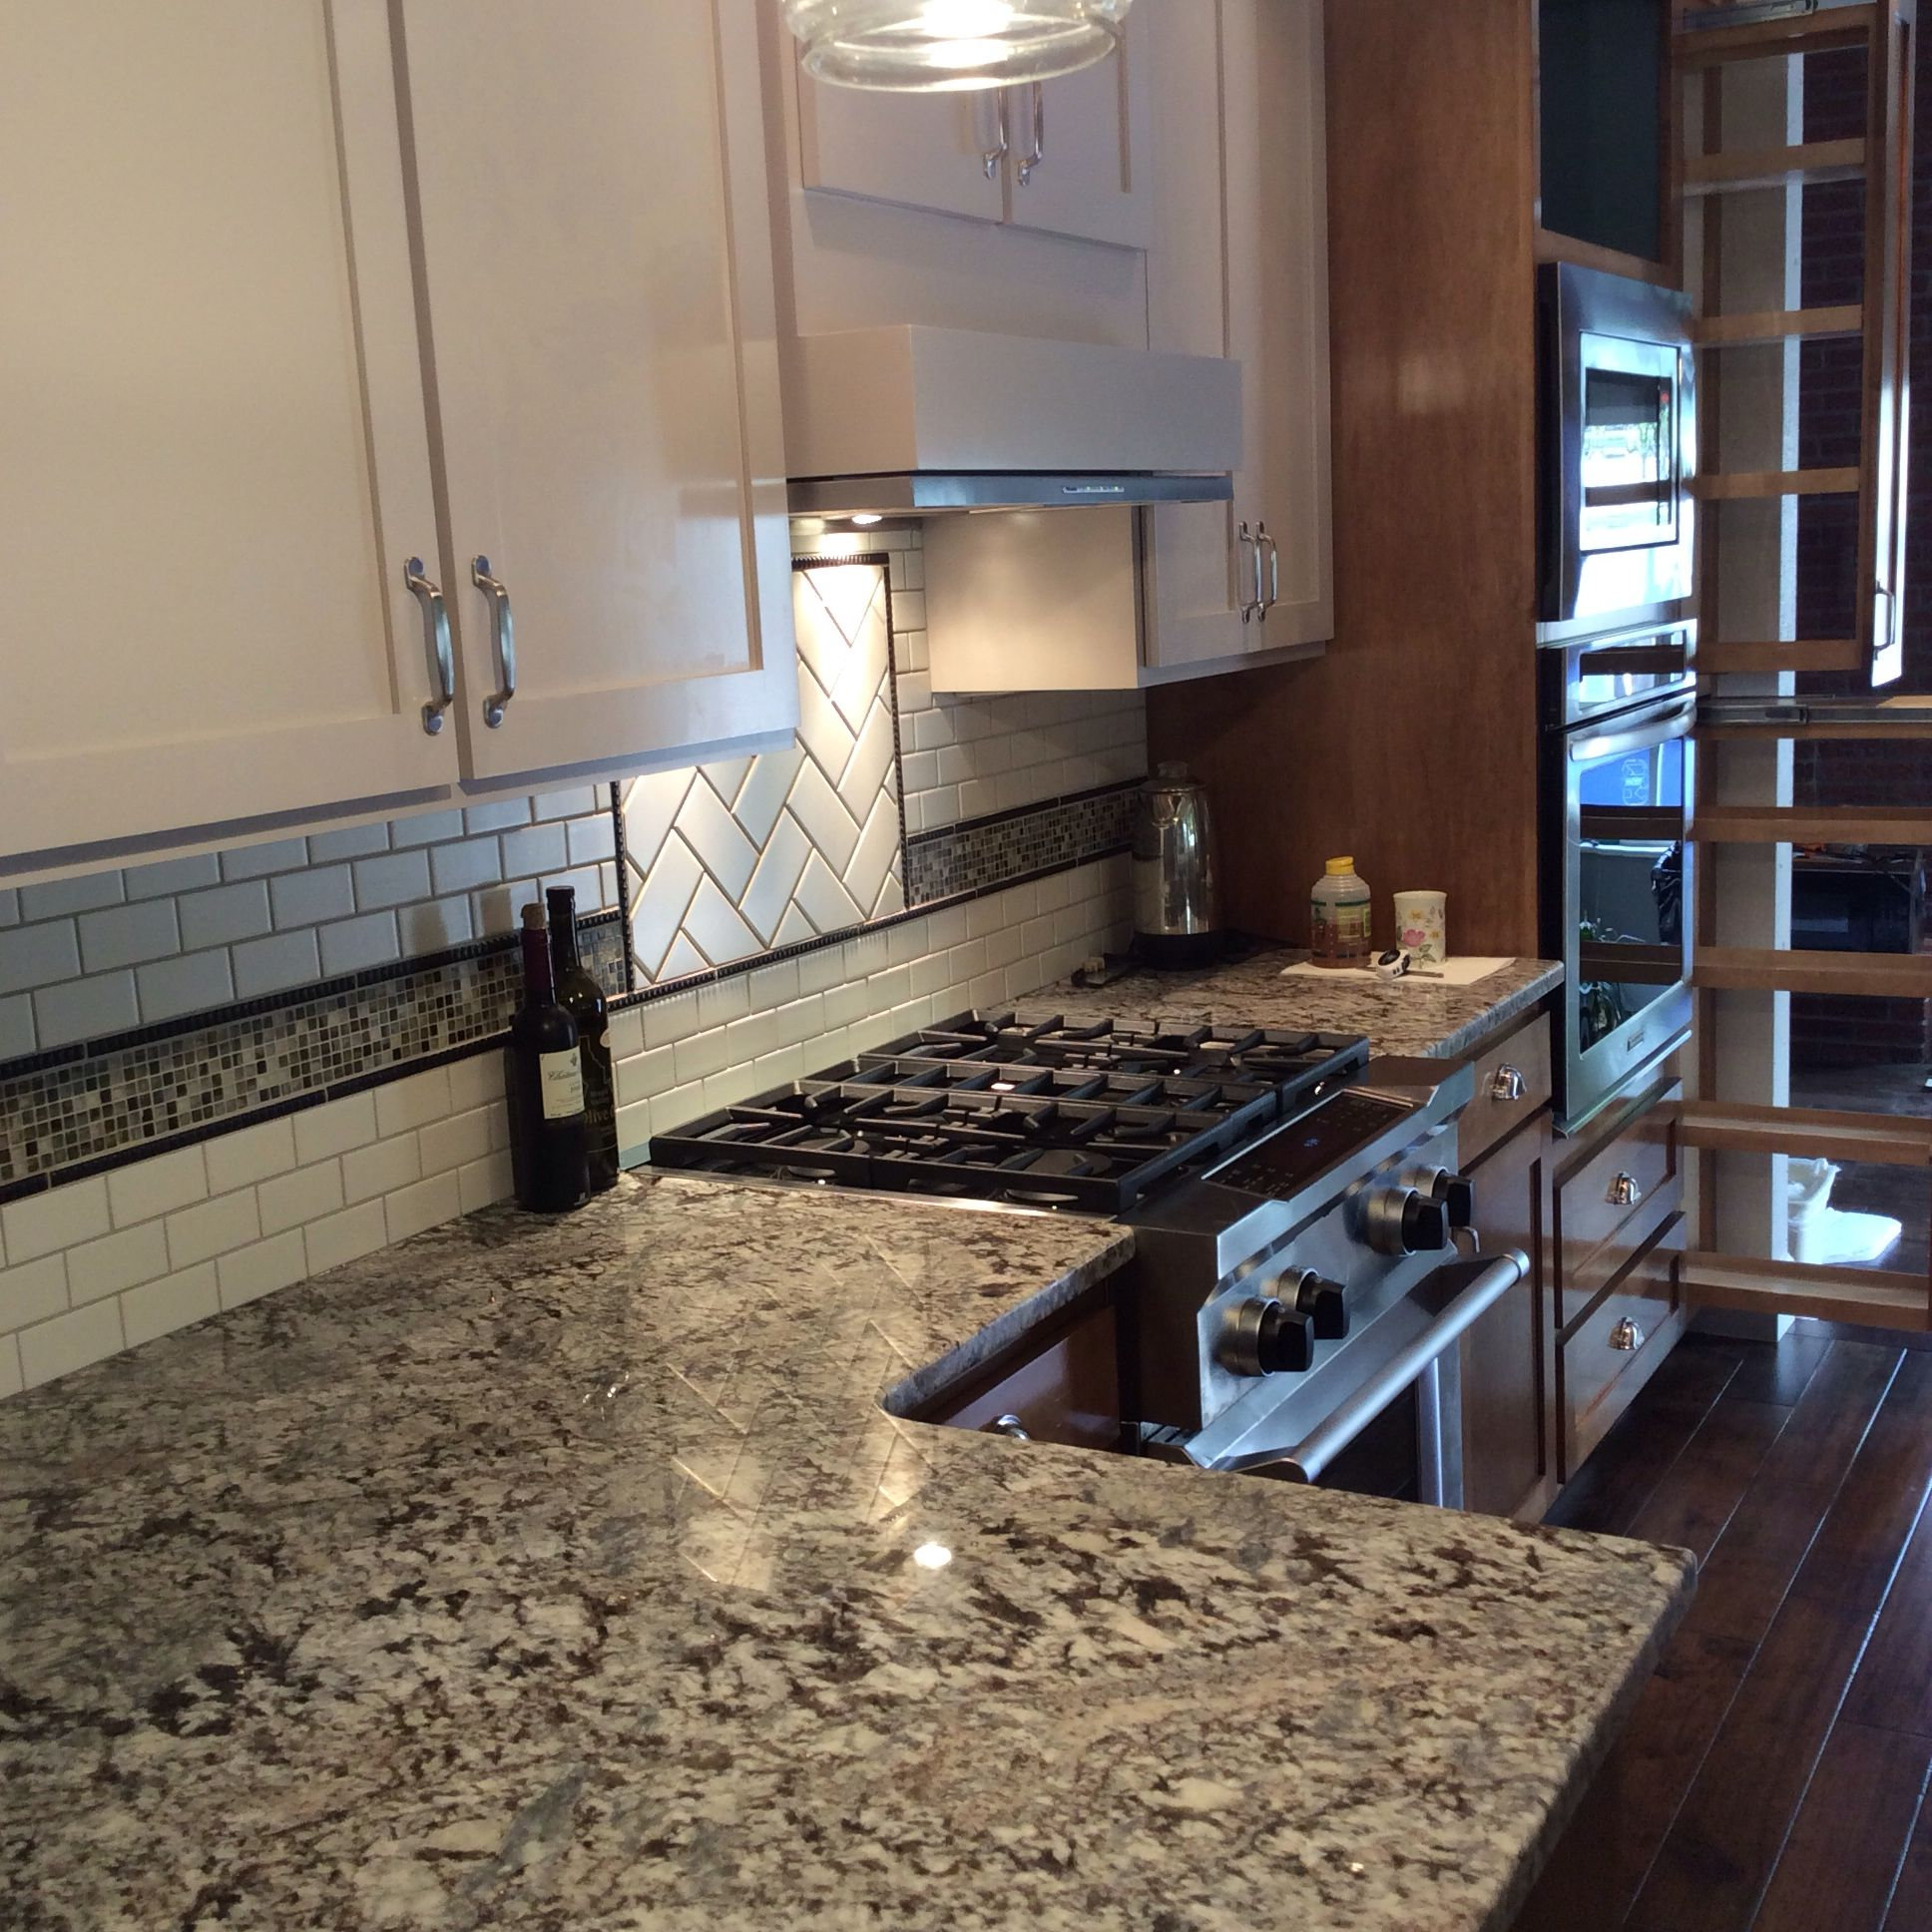 Kitchen Backsplash Granite: Custom Kitchen With Lennon Granite Countertops, Subway